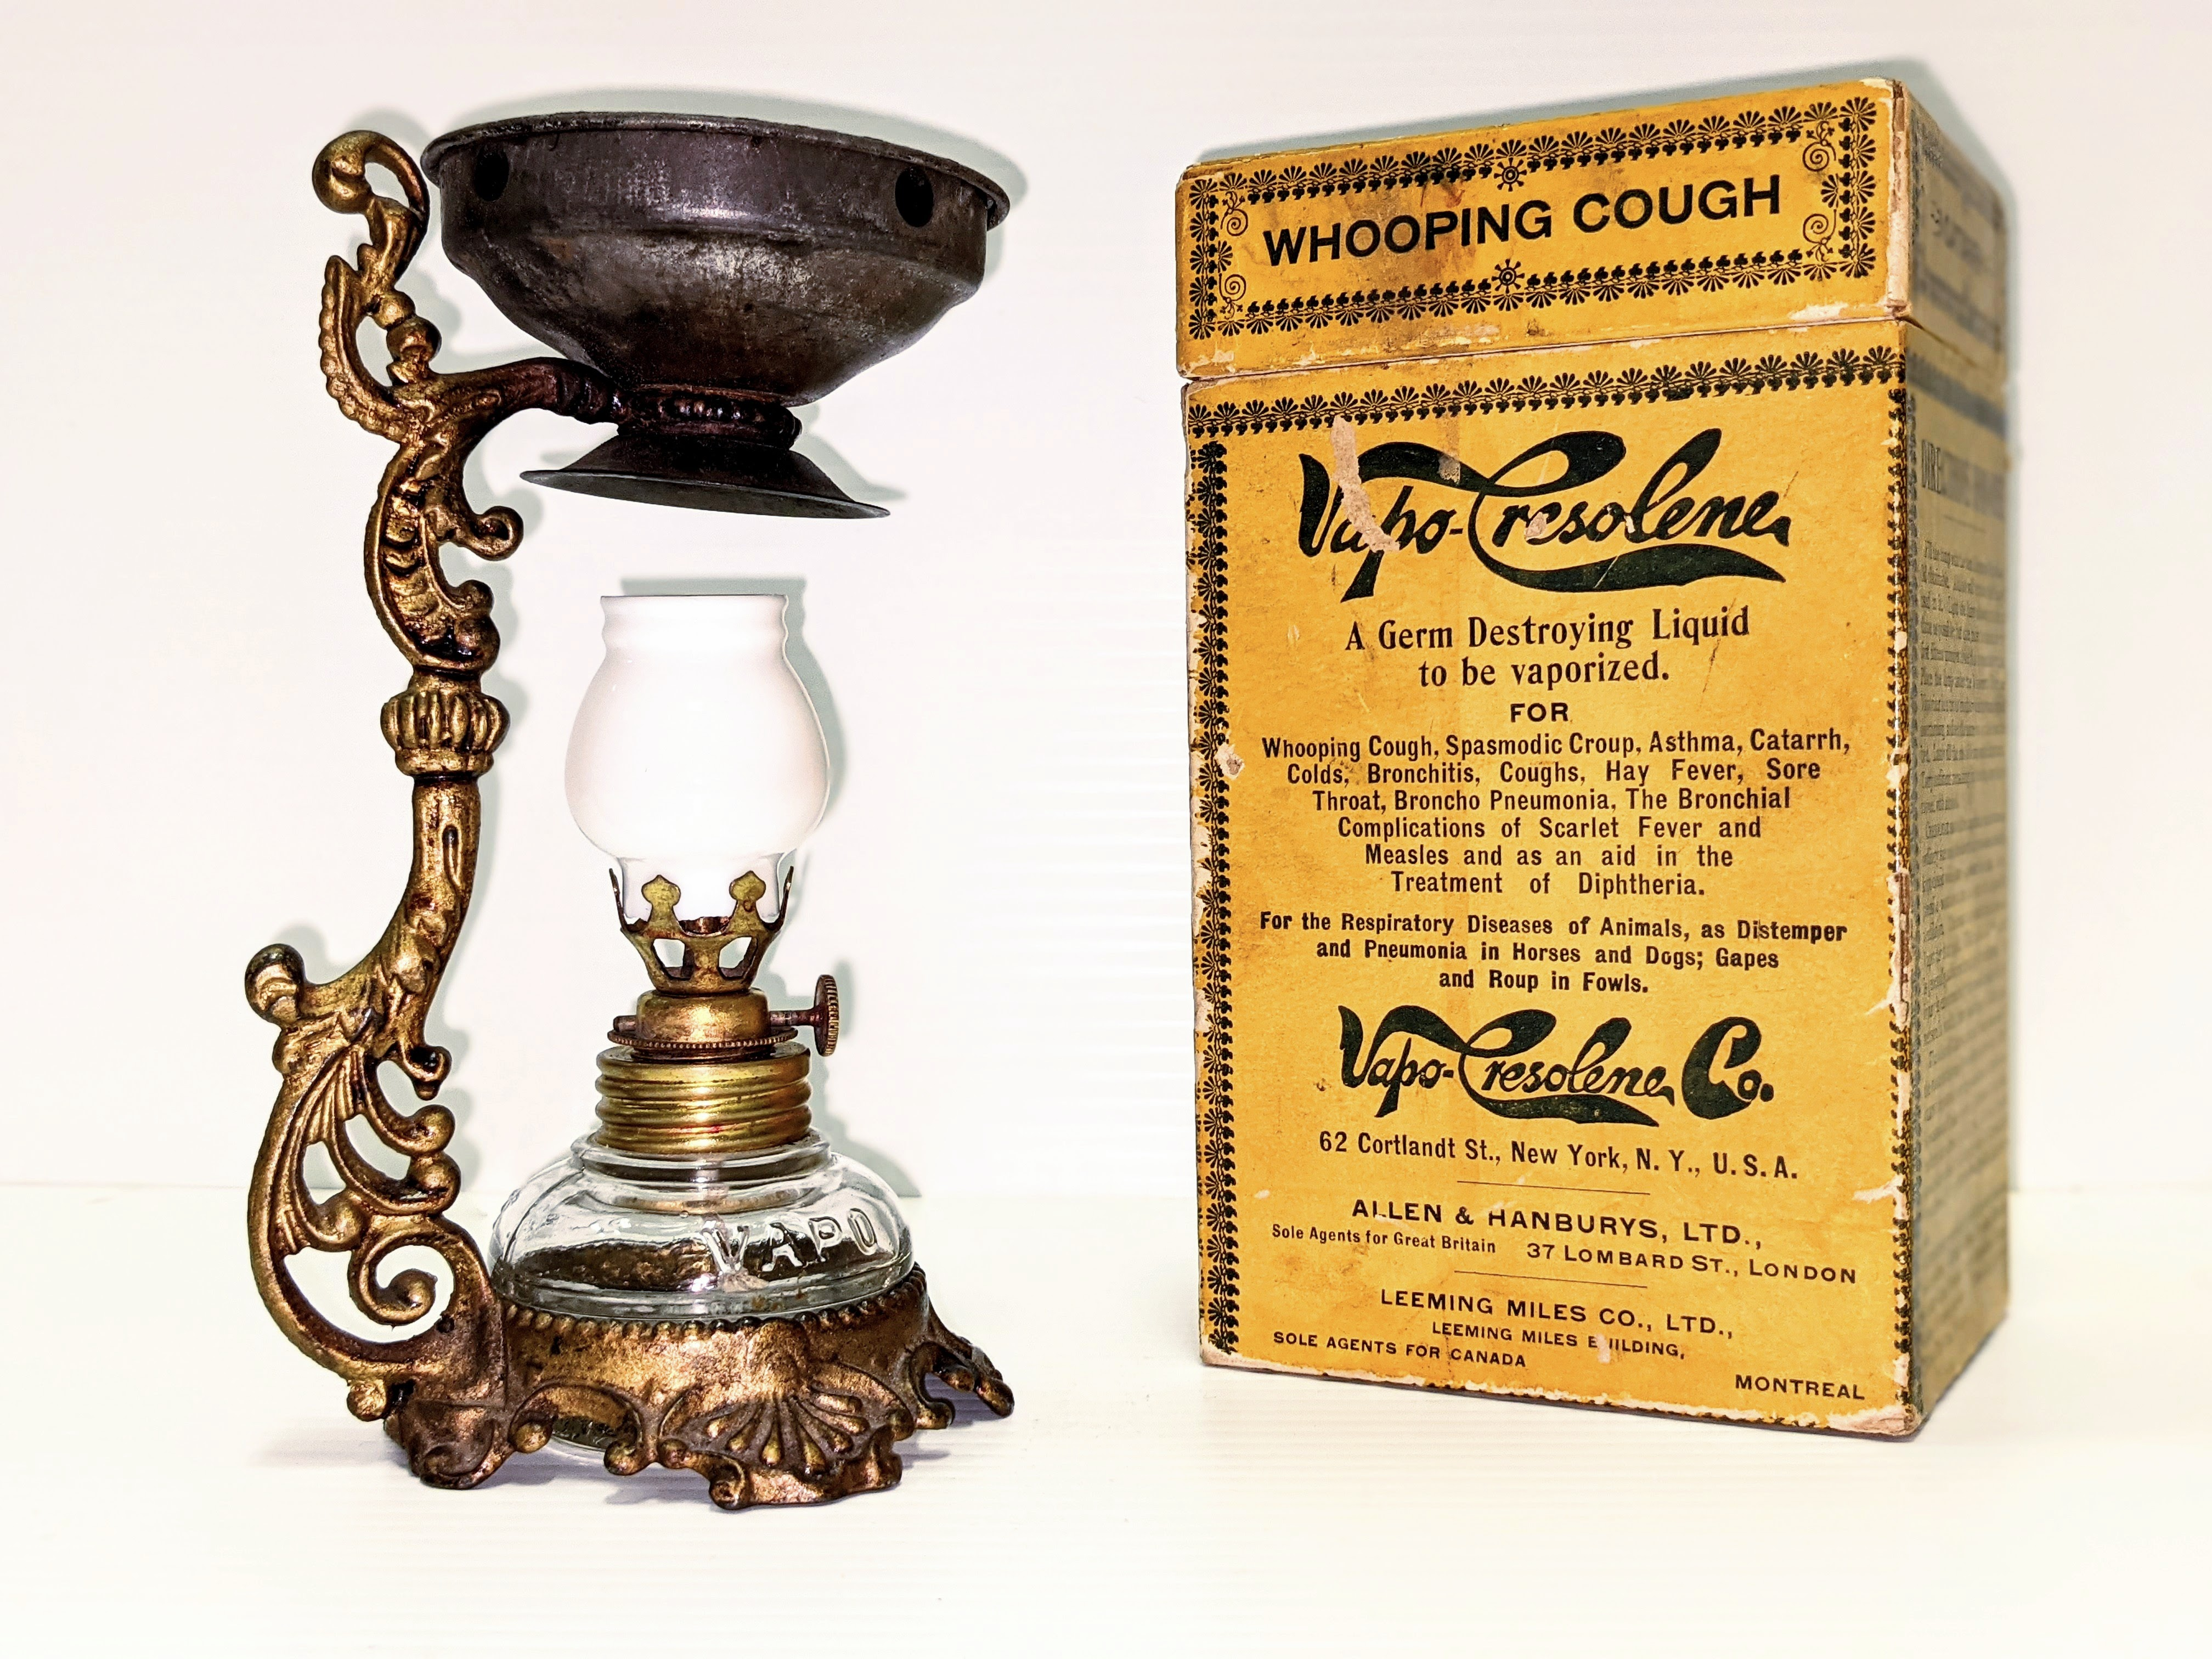 """Jack Whitehouse gifted this Vapo-Cresolene Lamp to Magdaline (Smith) Lapp in 1921. The lamp was used to keep the family healthy while living in Hay lakes and Fort Vermilion. The small kerosene lamp at the base would heat the """"Germ destroying liquid"""" Cresolene placed in the dish above. Used to treat causes such as Diptheria, Scarlett Fever, Asthma, Whooping Cough and a host of others - it is also noted as effective treatment for respiratory diseases of animals.  29/03/2021 2020.87.1-3 / Ward, Mina"""